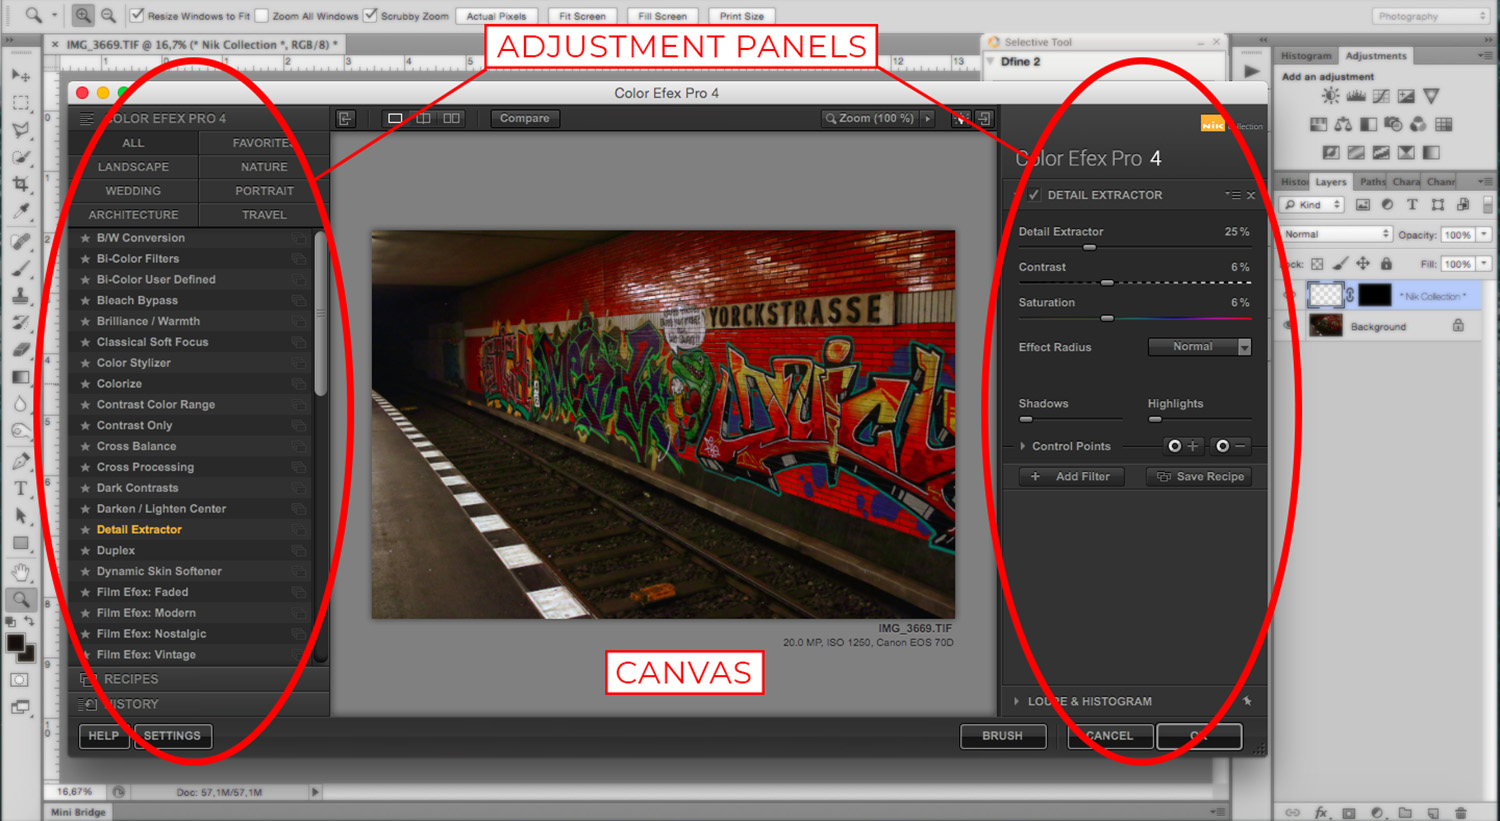 3 - How to Use the NIK Filter Collection with Photoshop - Interface